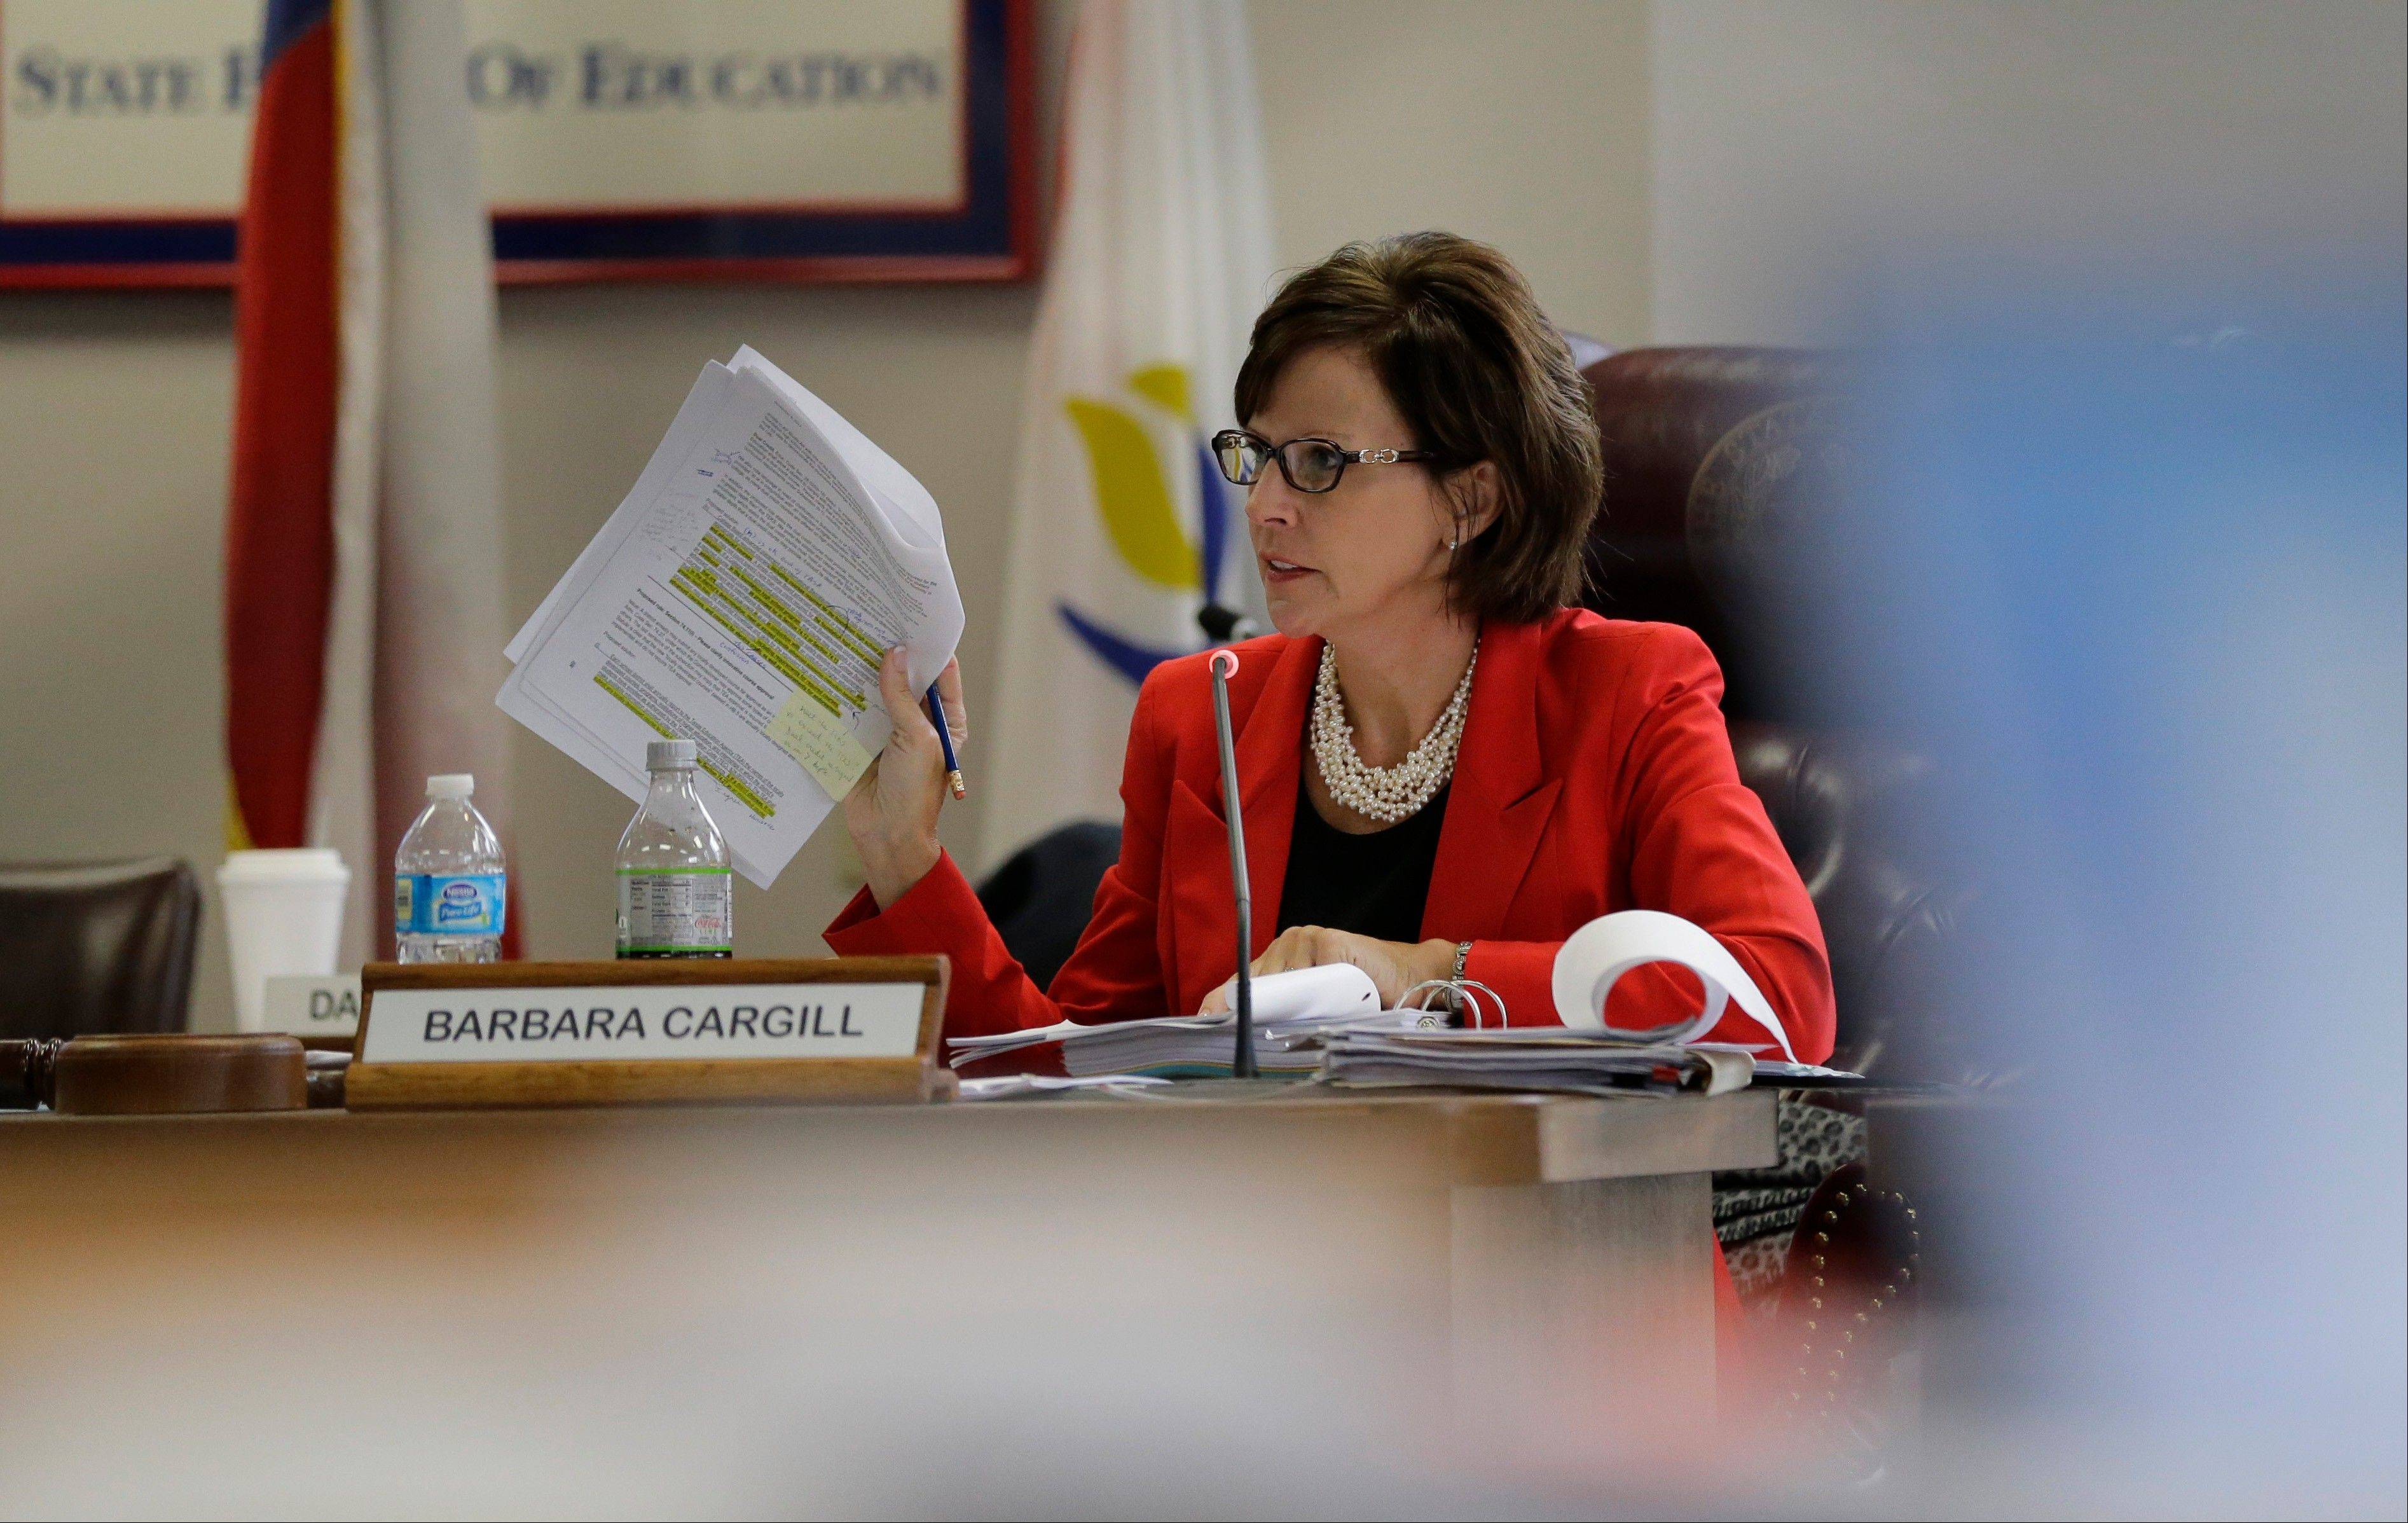 Texas Board of Education chair Barbara Cargill leads the groups meeting, Thursday, Nov. 21, 2013, in Austin, Texas. The Board of Education is casting critical votes on new science textbooks for use statewide